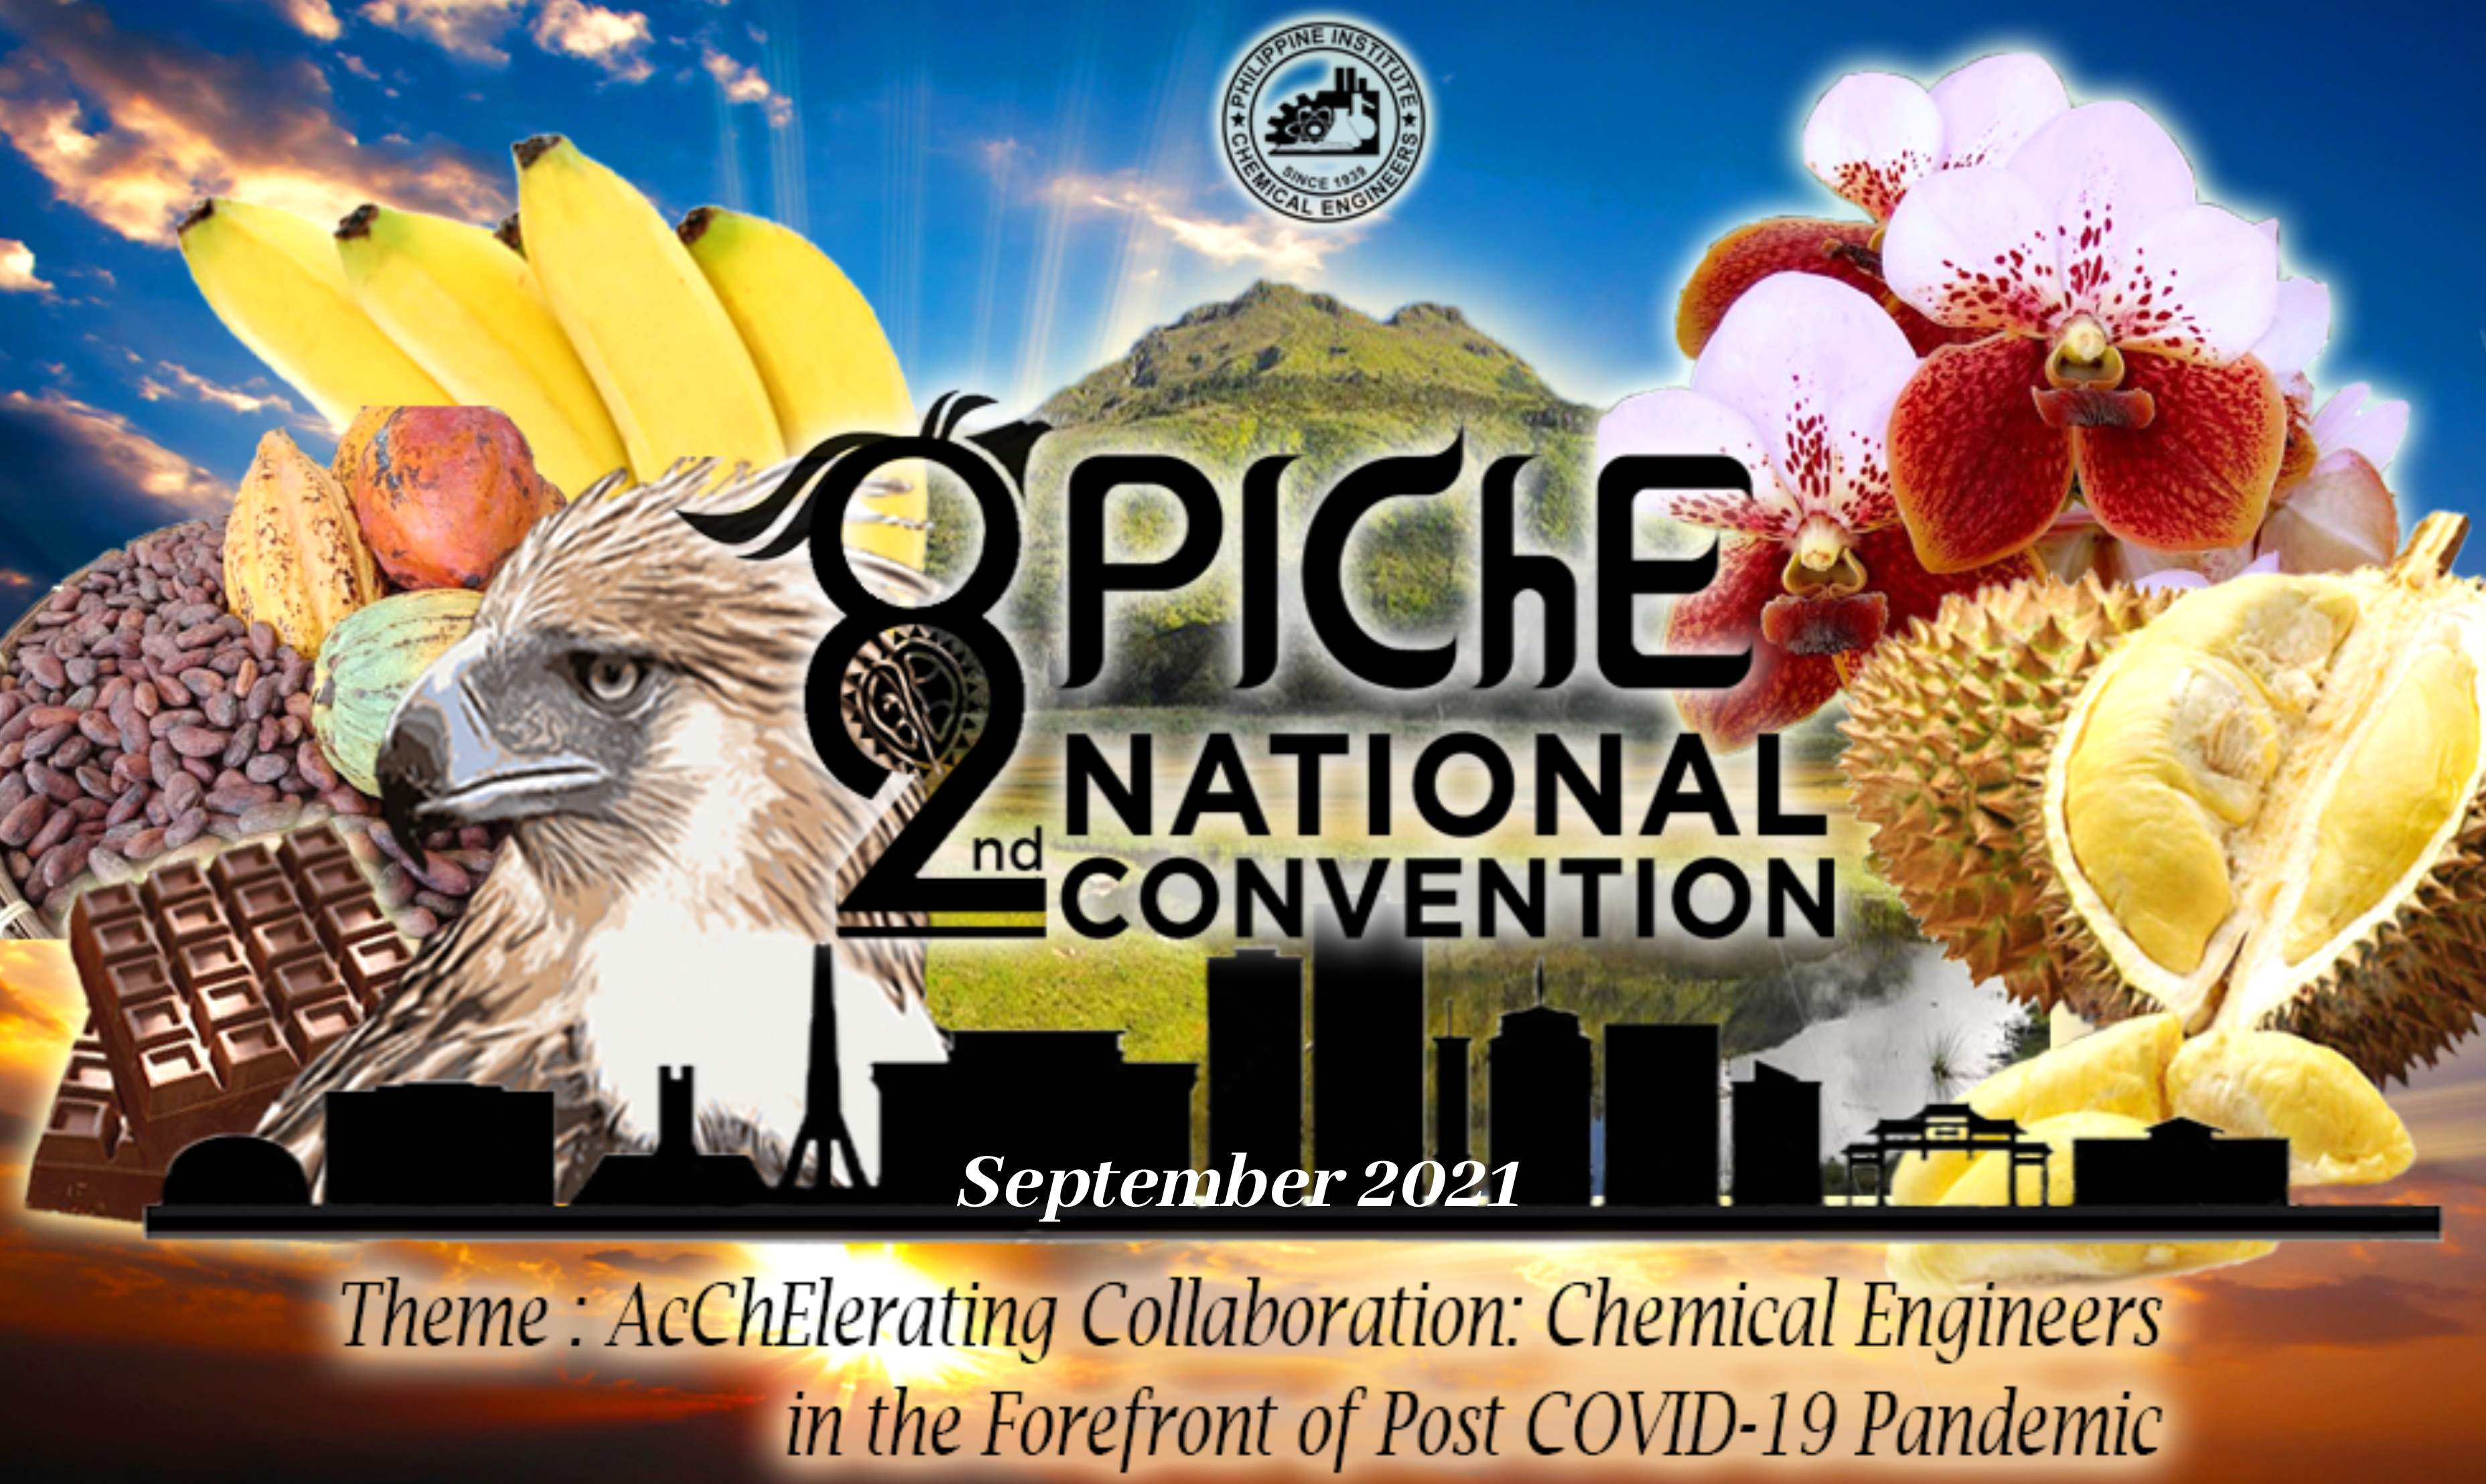 The 82nd PIChE National Convention Teaser Program